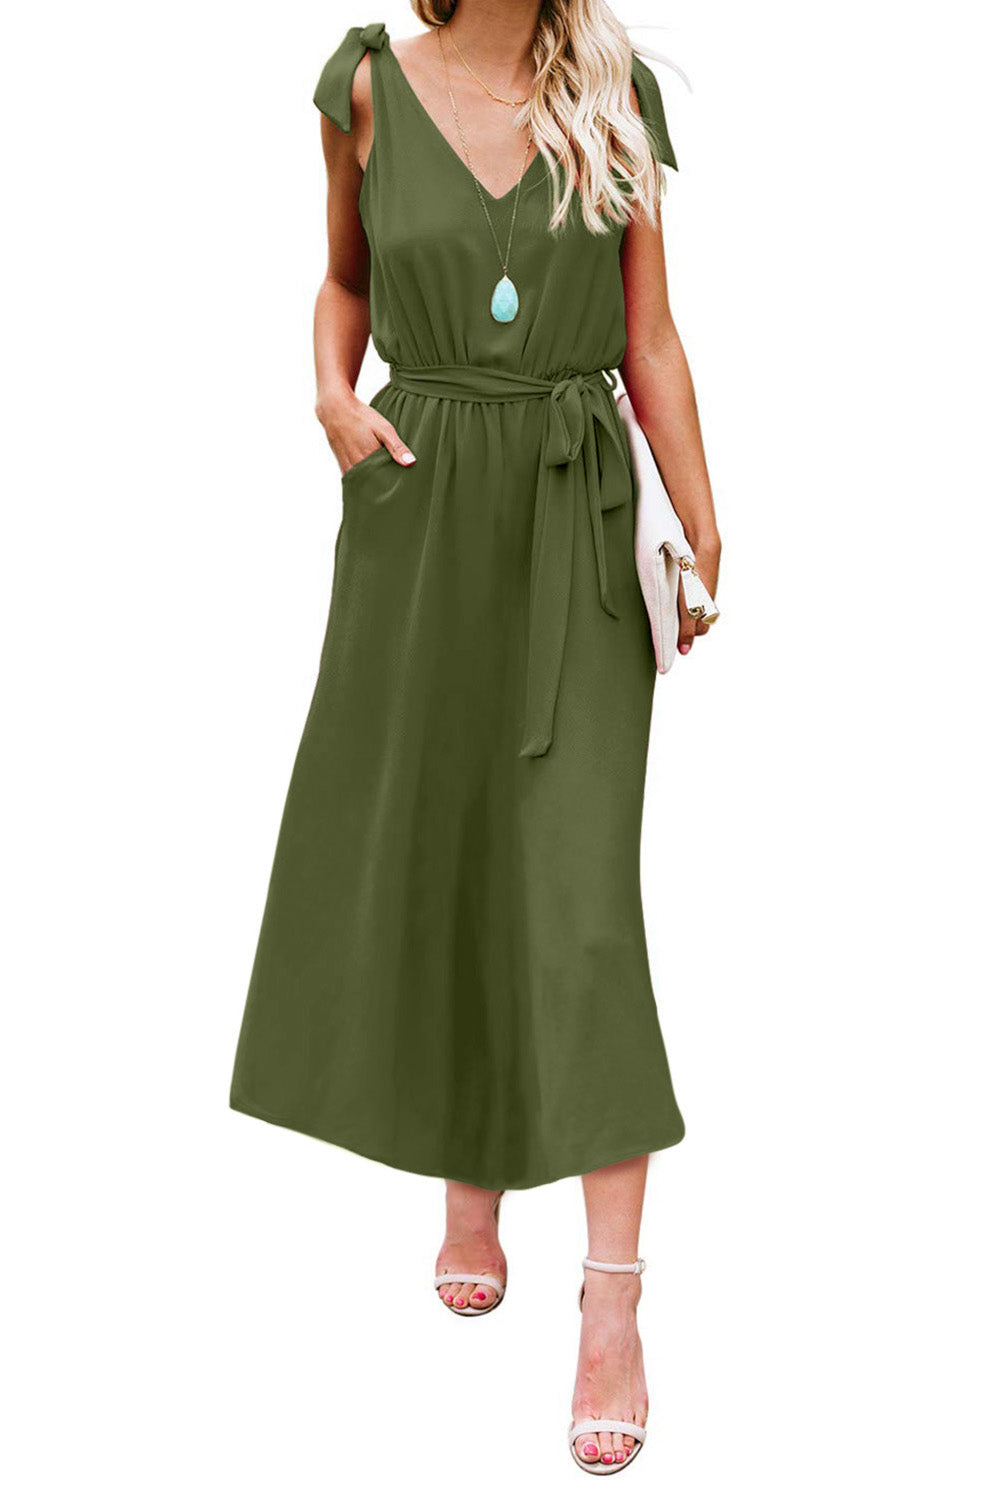 Green Bowknot Shoulder Straps Jersey Dress with Belt